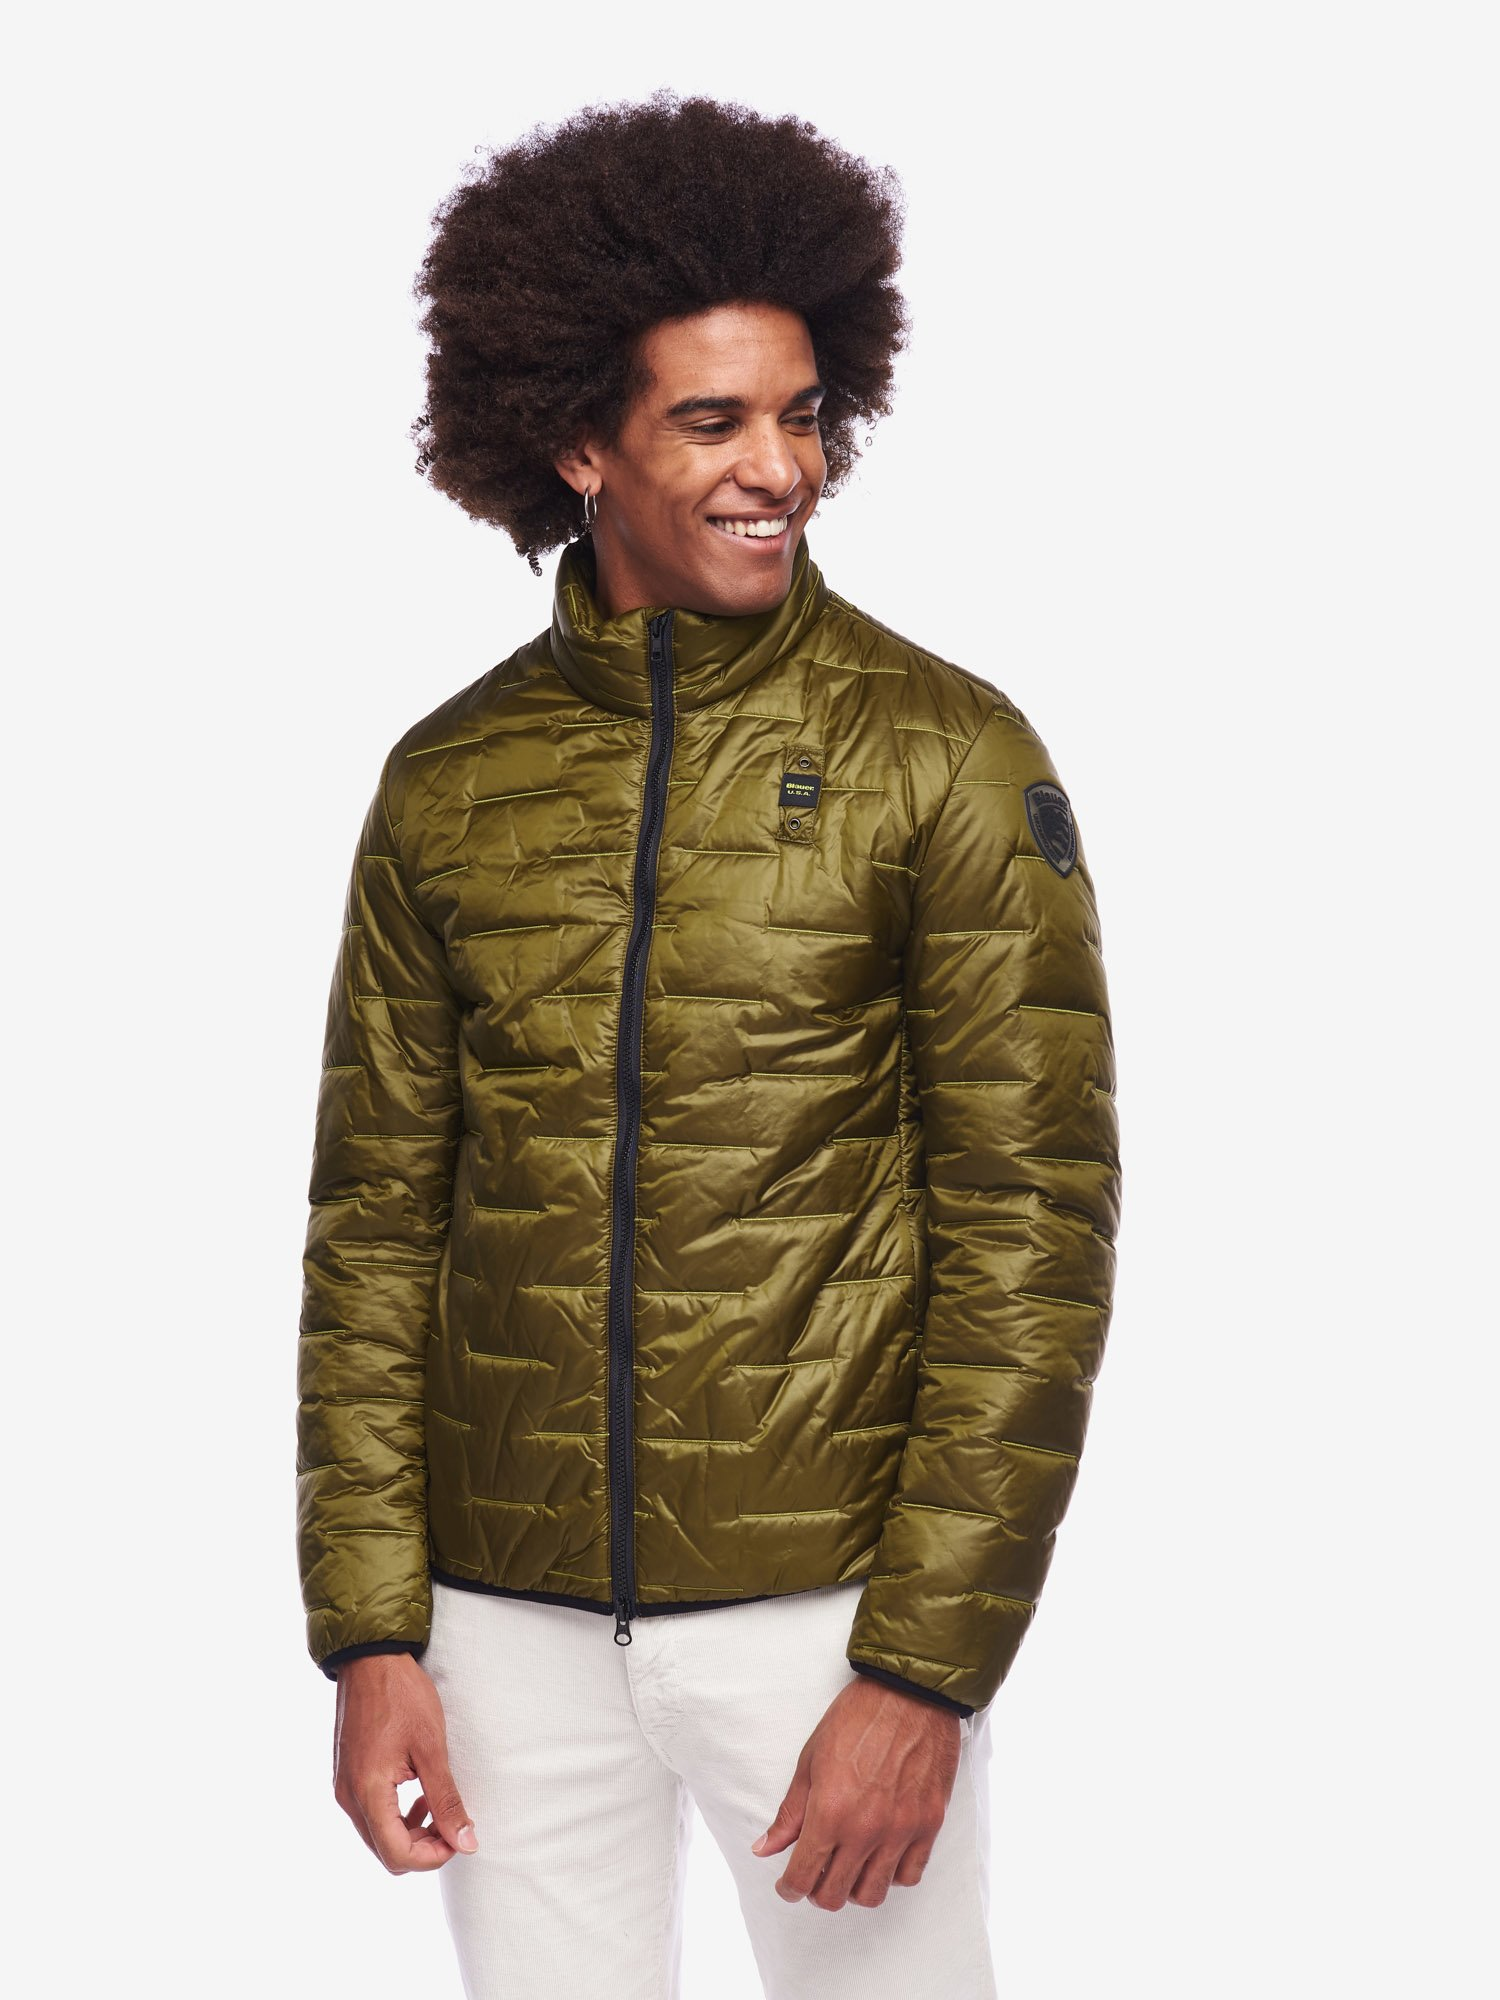 Blauer - HOLMES ULTRA LIGHT ECO JACKET - Green Snake - Blauer